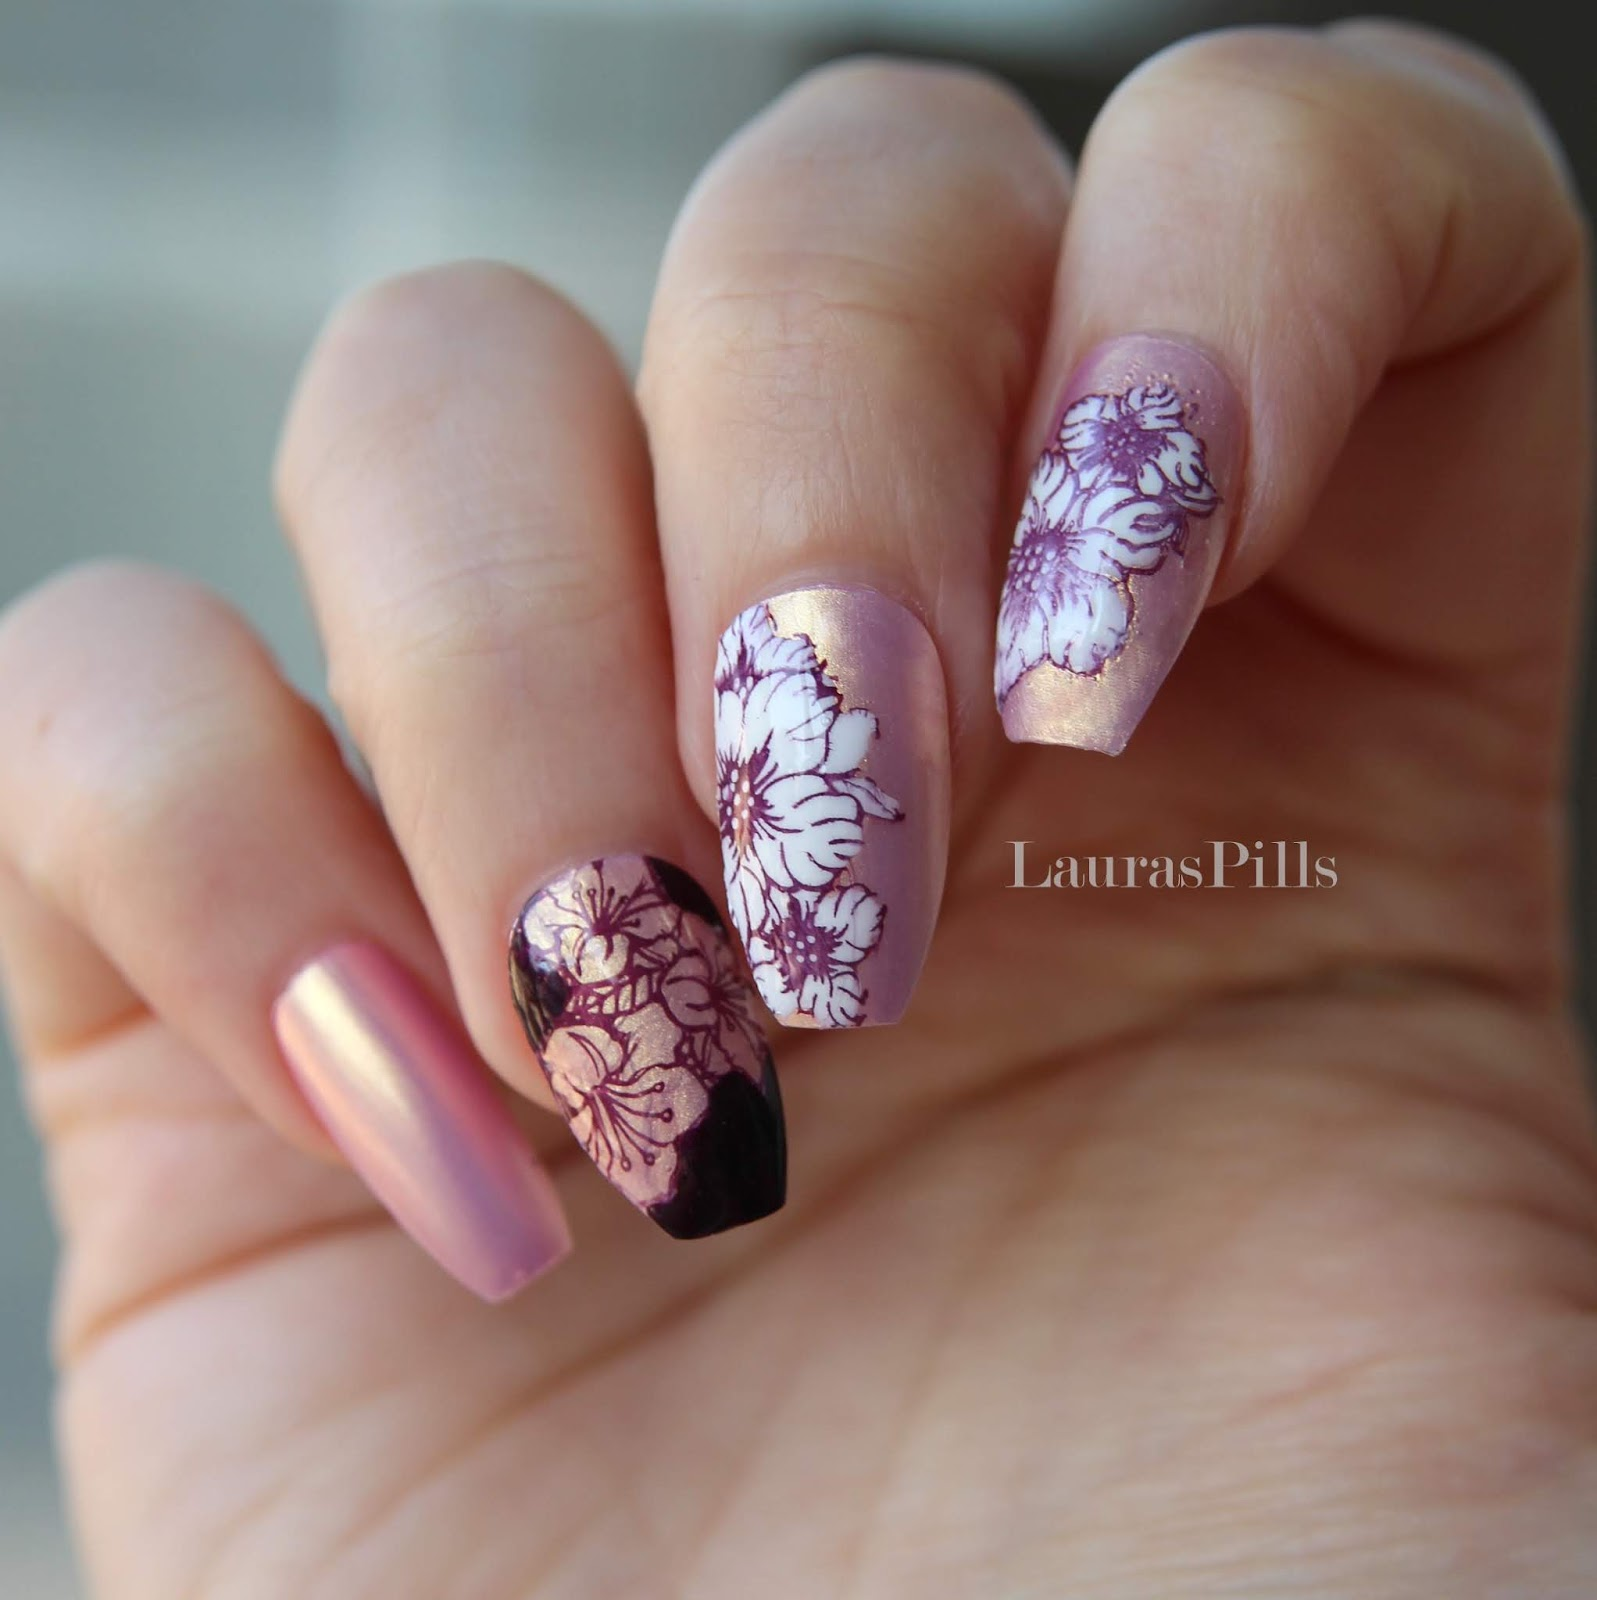 Lauras pills 2018 for the base colour i decided to use another product from beauty big bang a mermaid shell nail polish it is a beautiful pearlescent shade between pink izmirmasajfo